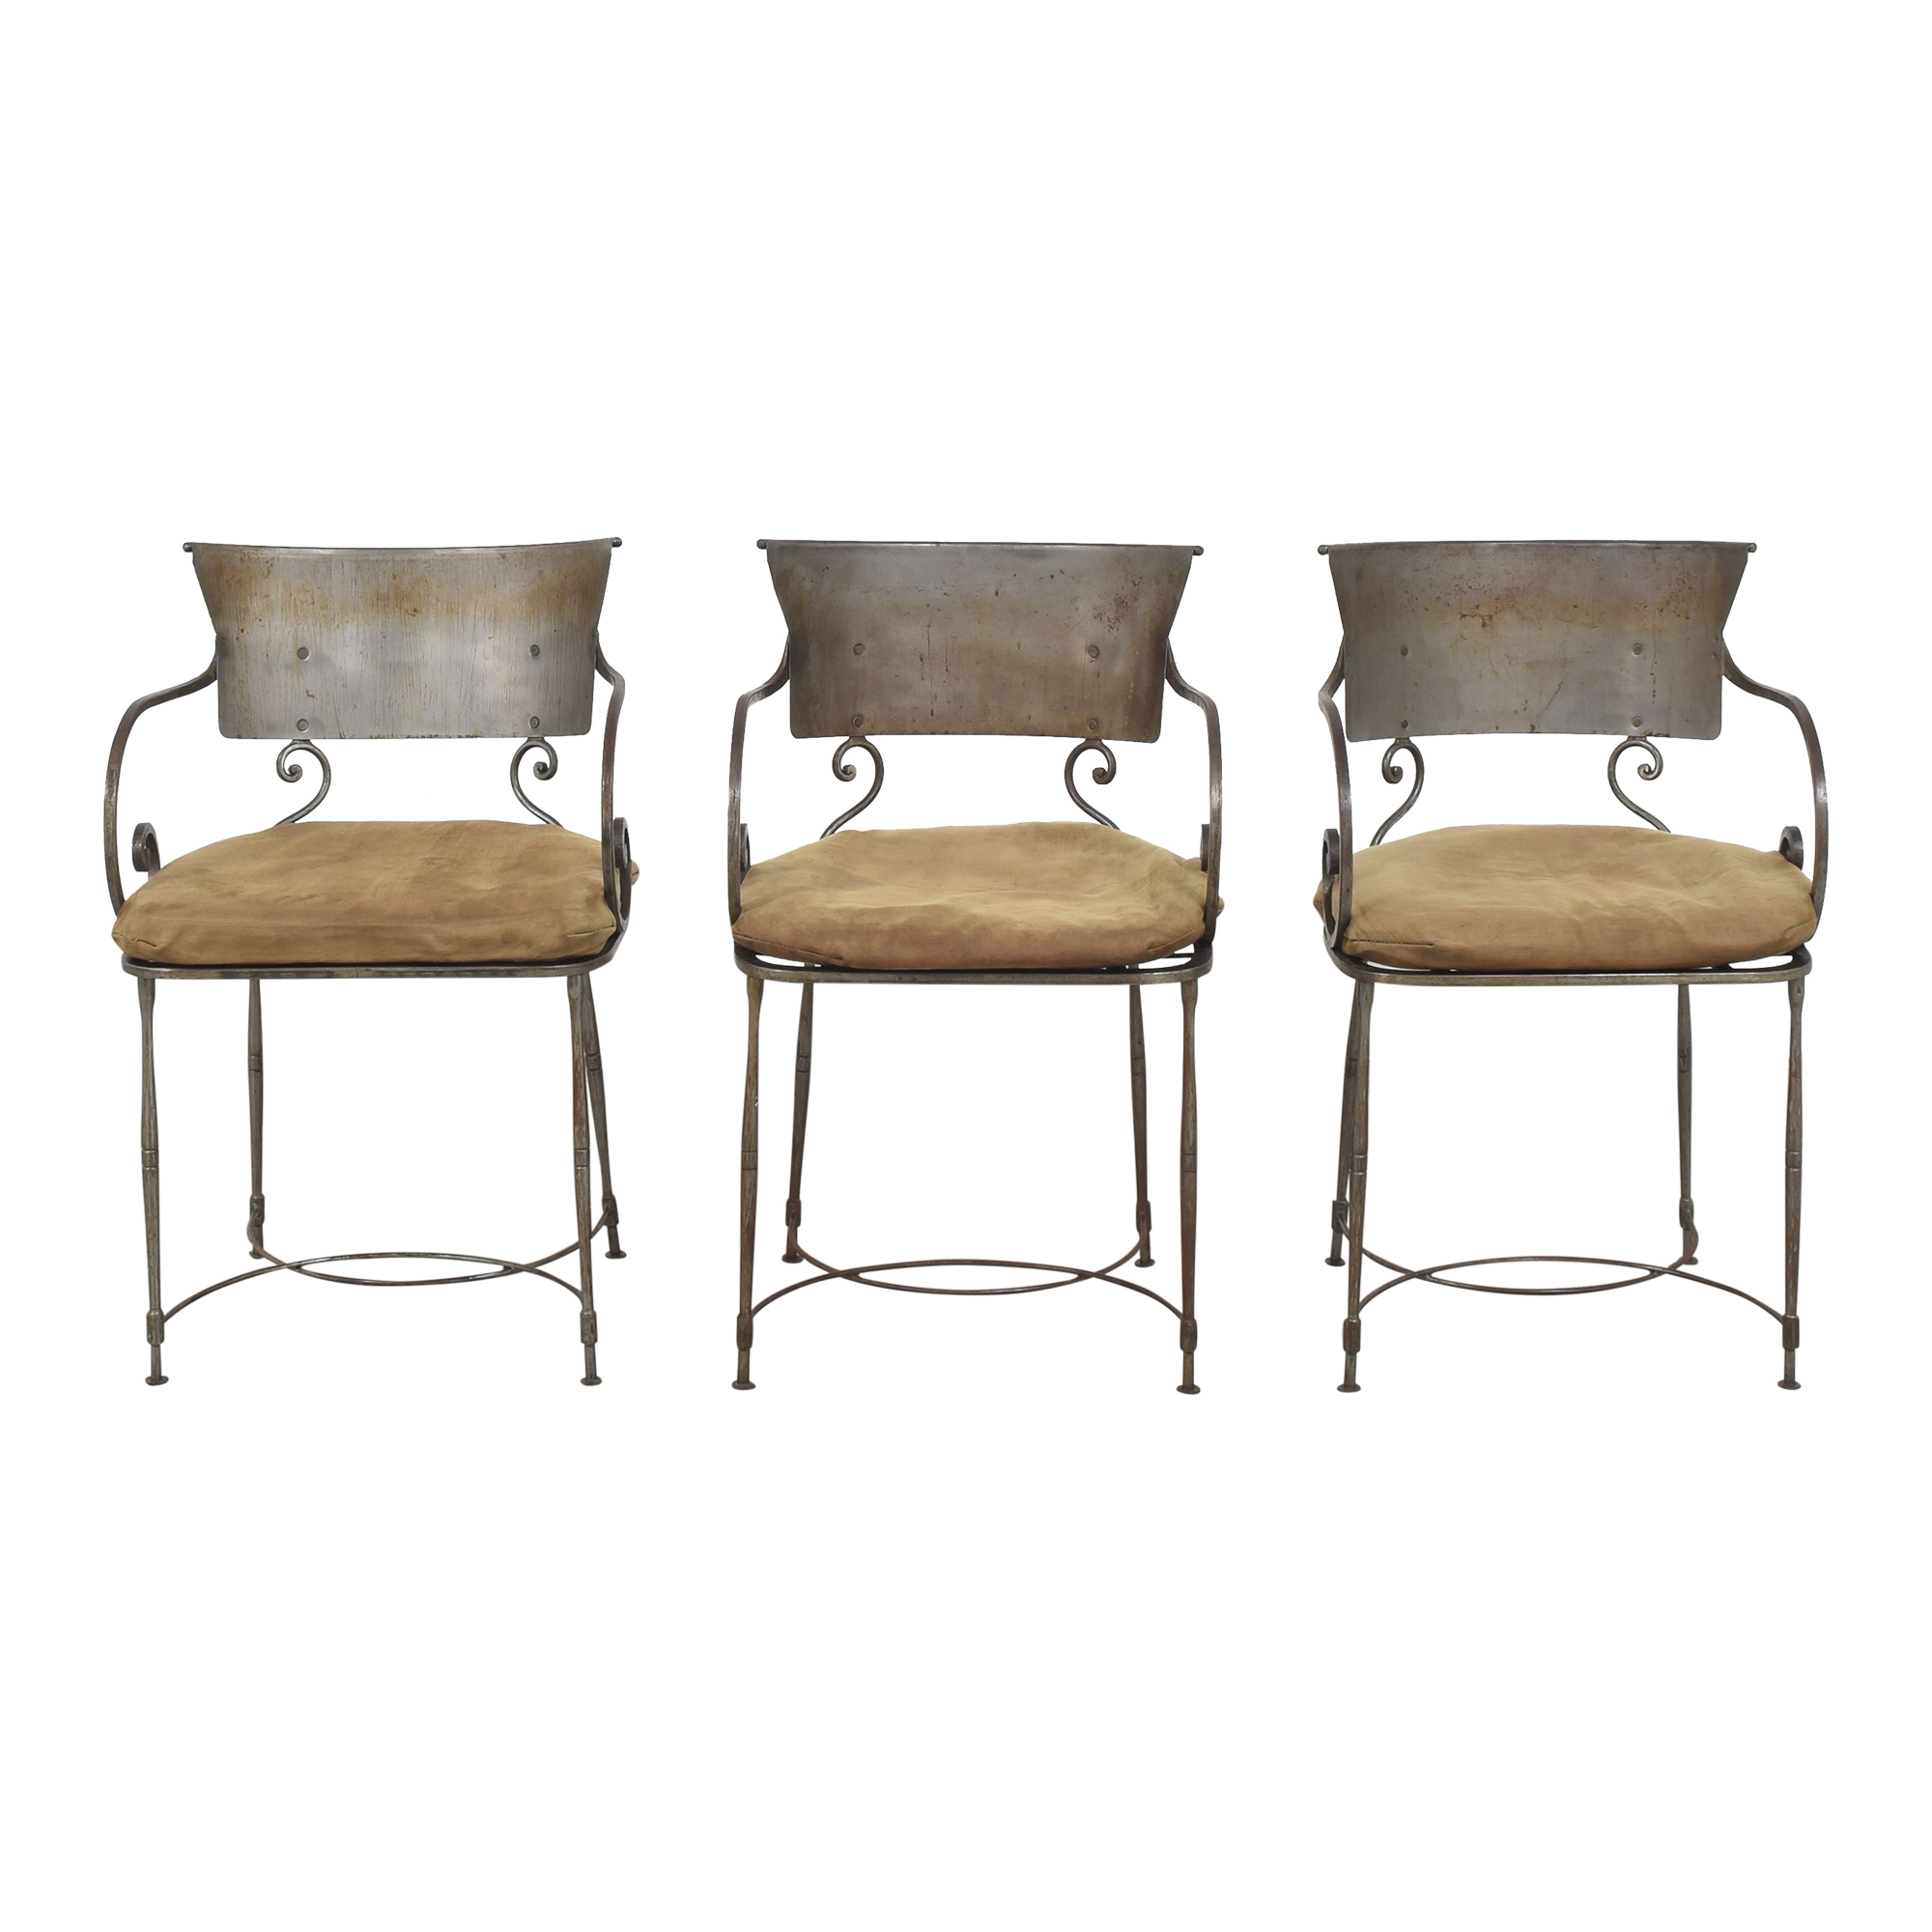 buy Bloomingdale's Art Deco-Style Chairs Bloomingdale's Dining Chairs